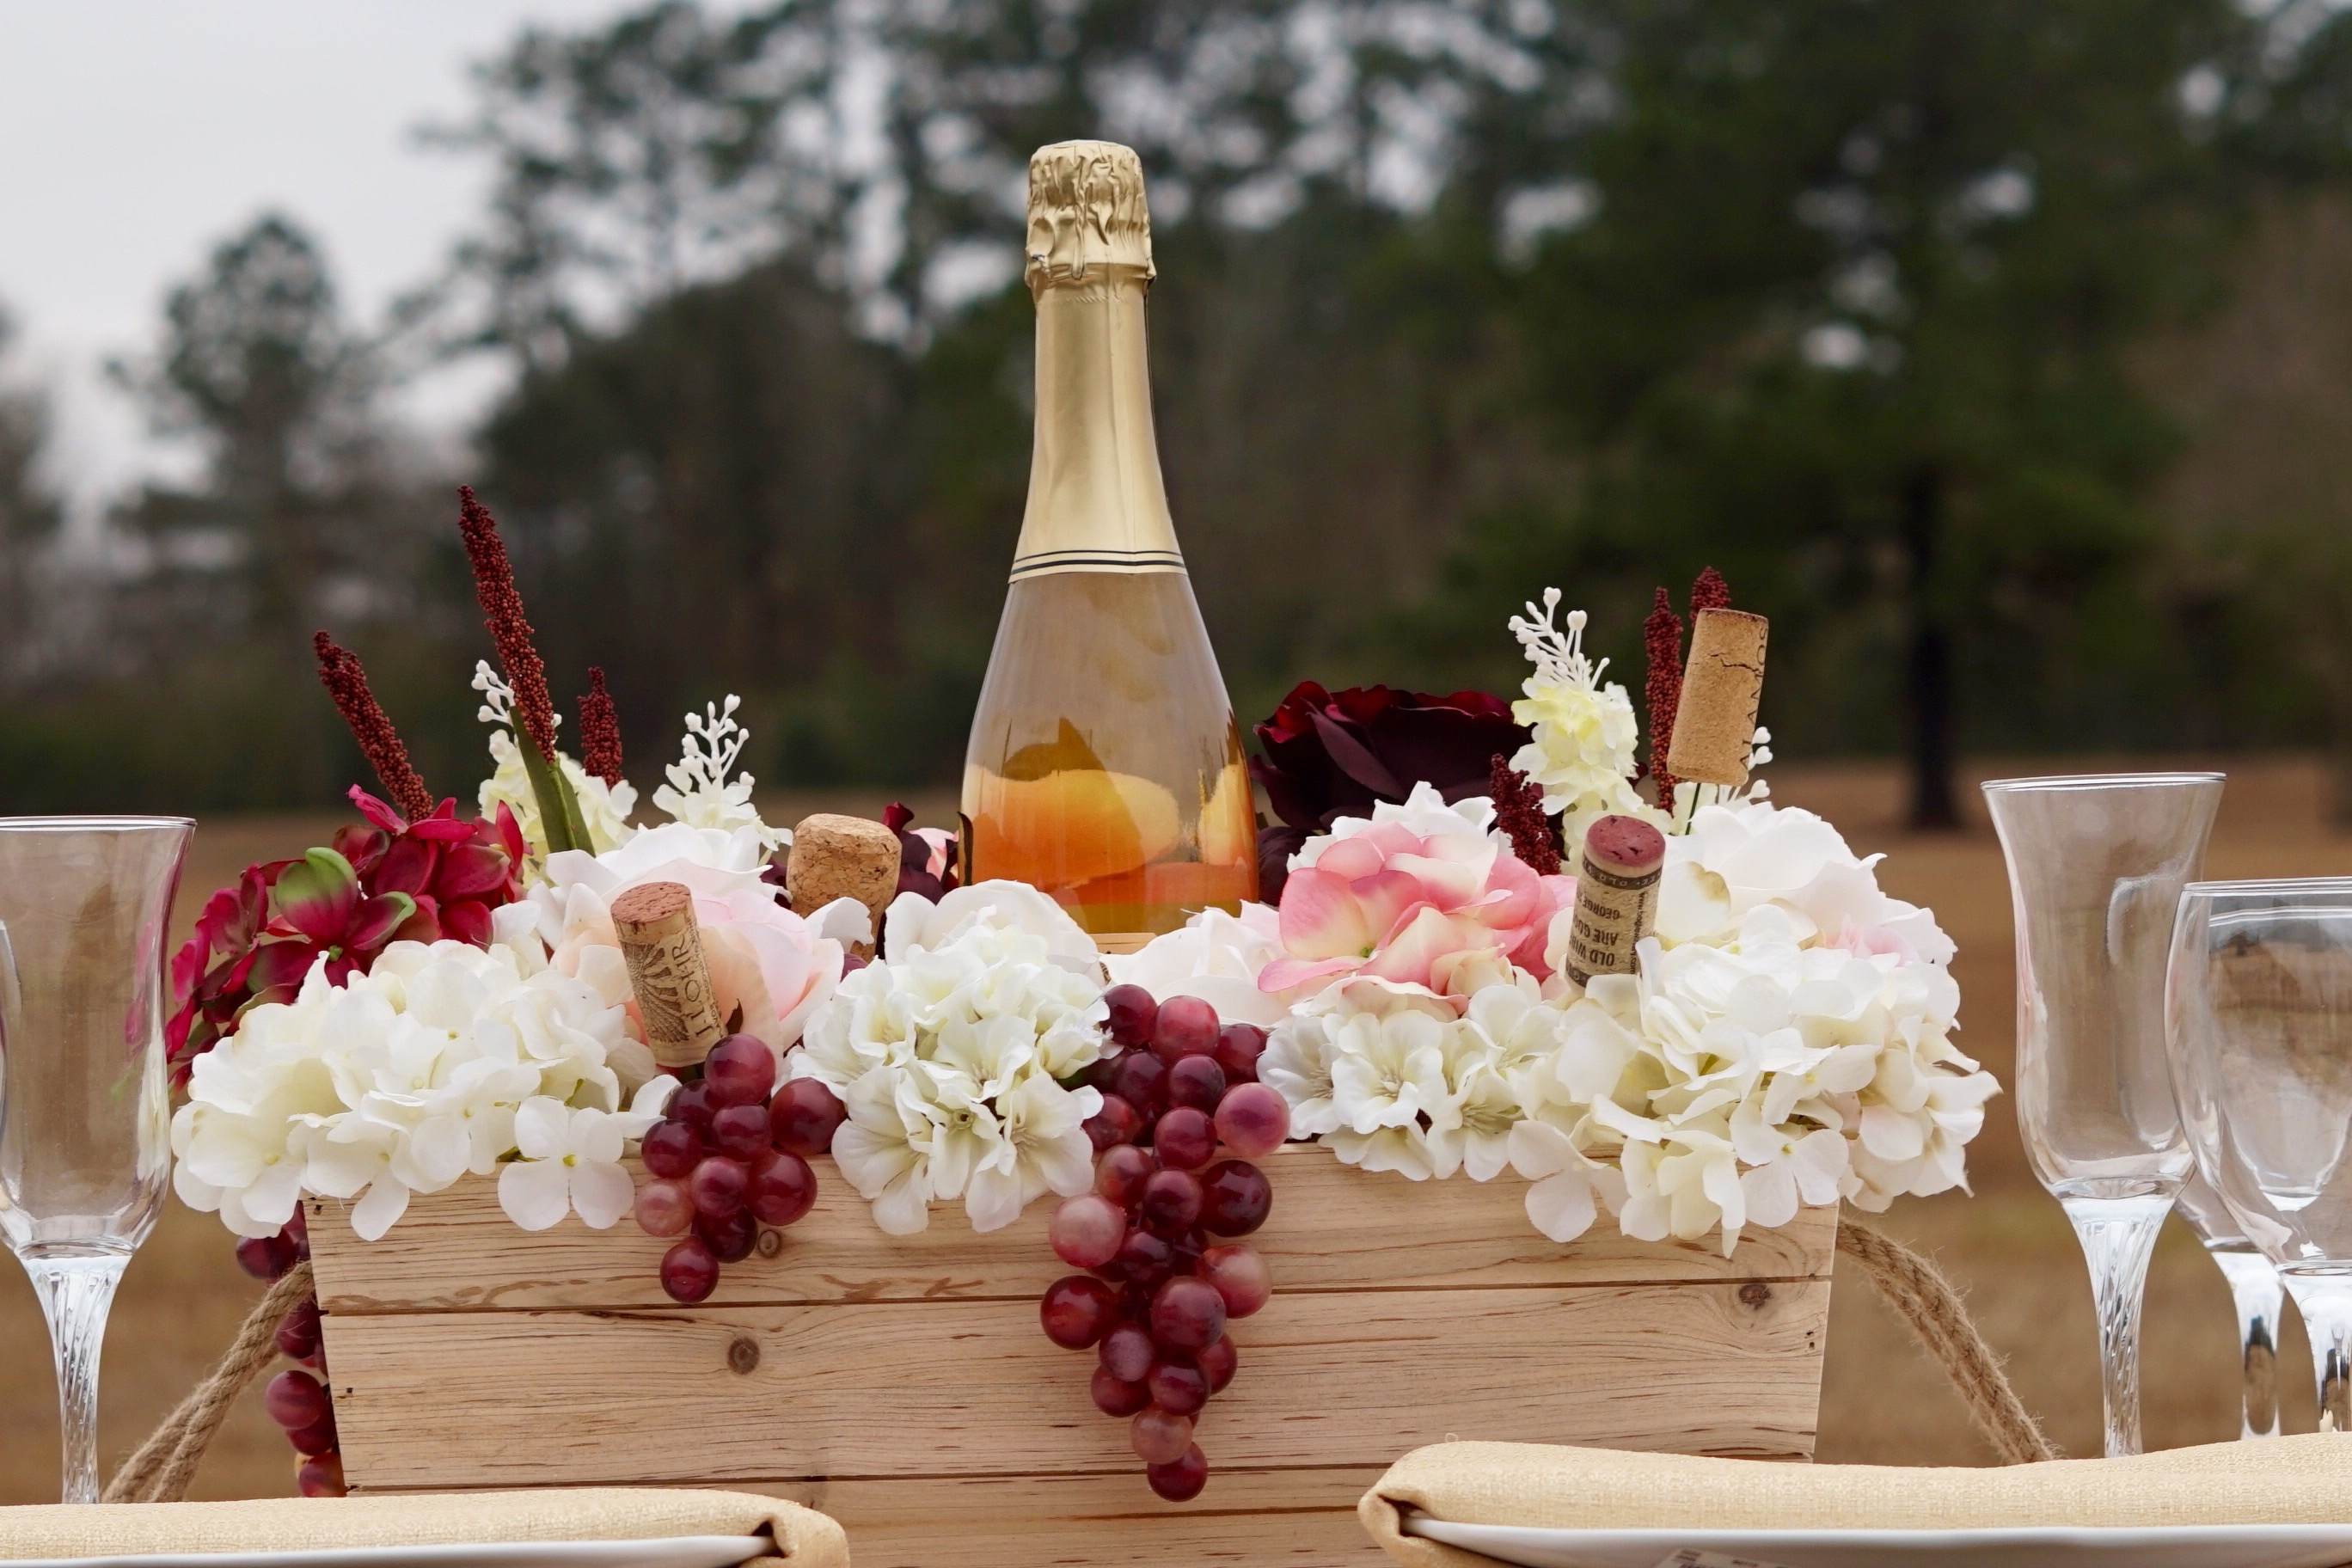 Rustic wine themed wooden crate diy wedding centerpiece for Wine themed centerpieces